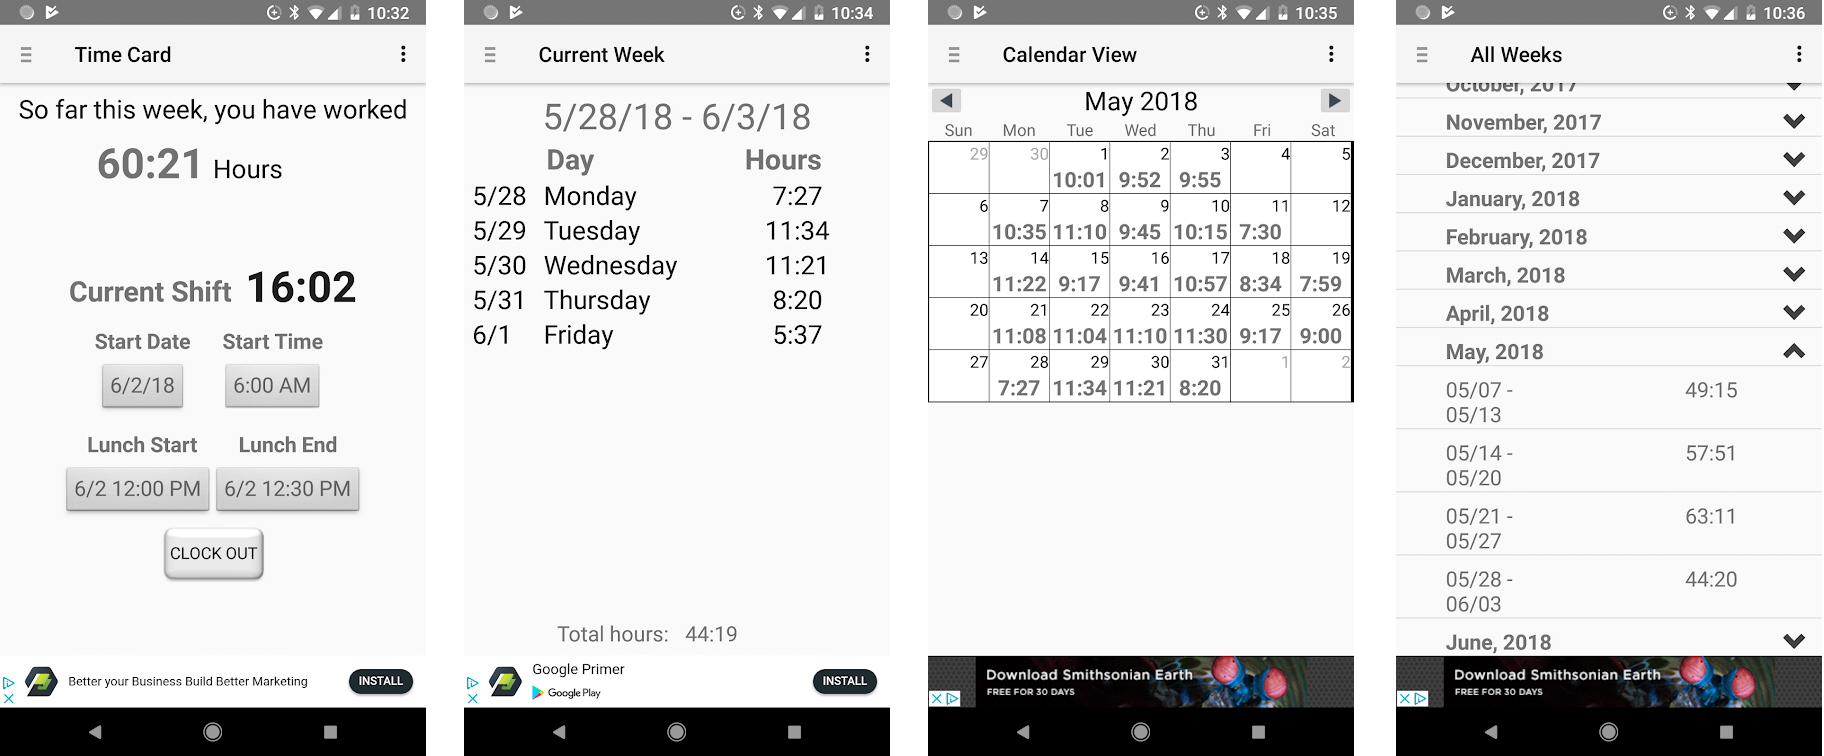 Time Card app for Android - screenshots